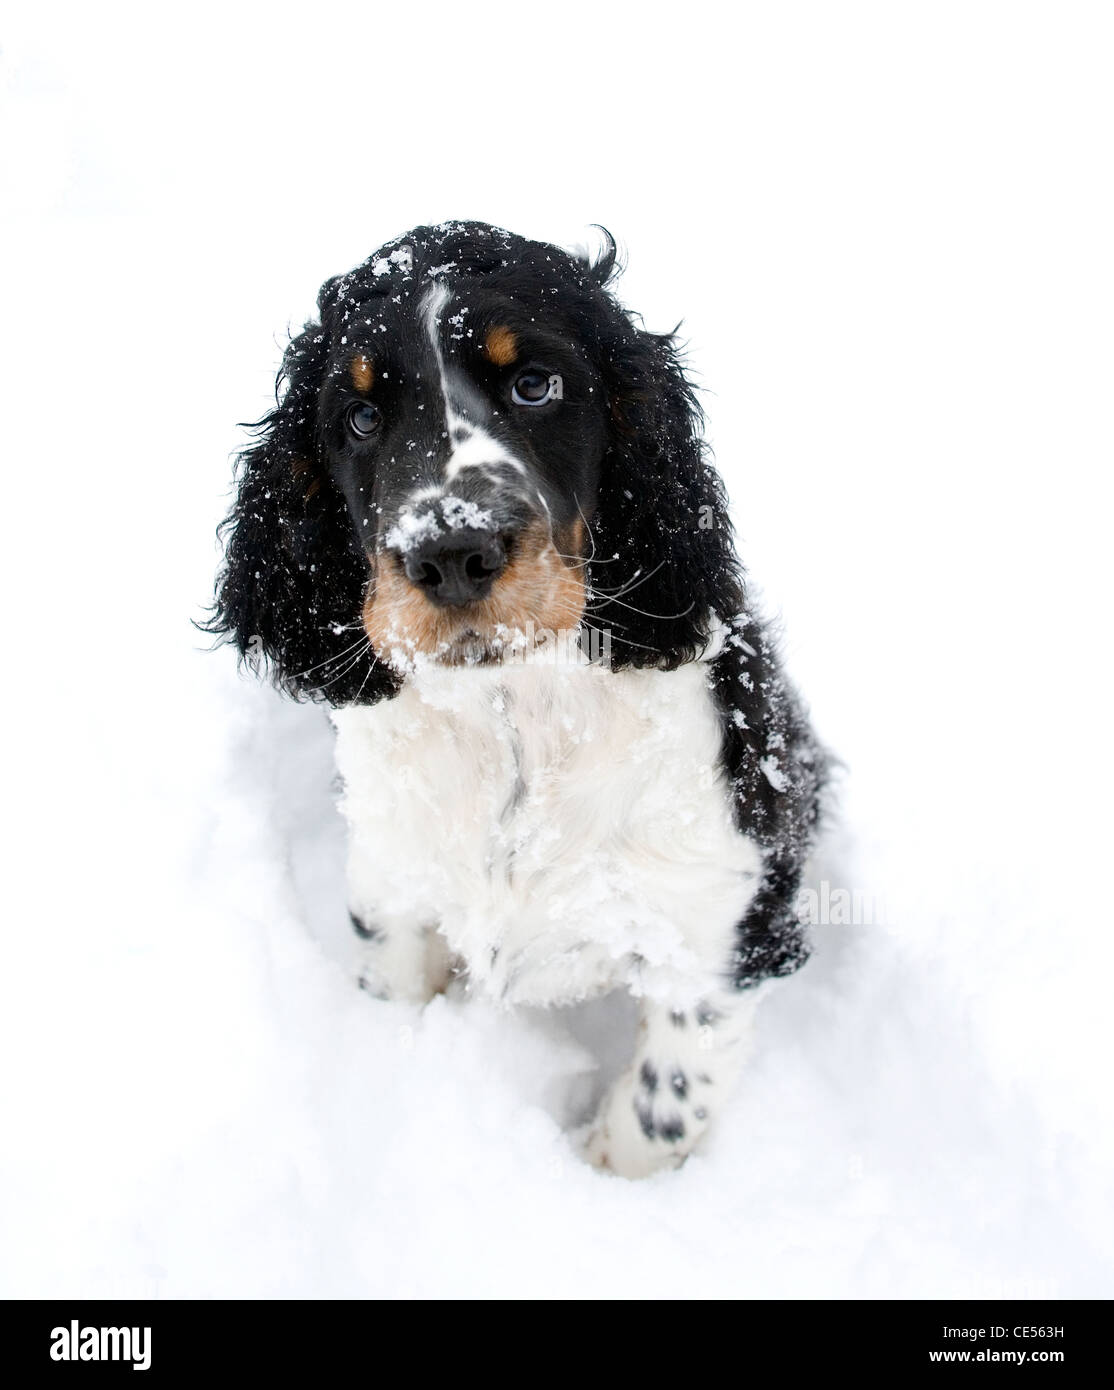 Indie, the English springer spaniel puppy and his first outing in the snow, has a quizzical, funny expression as - Stock Image